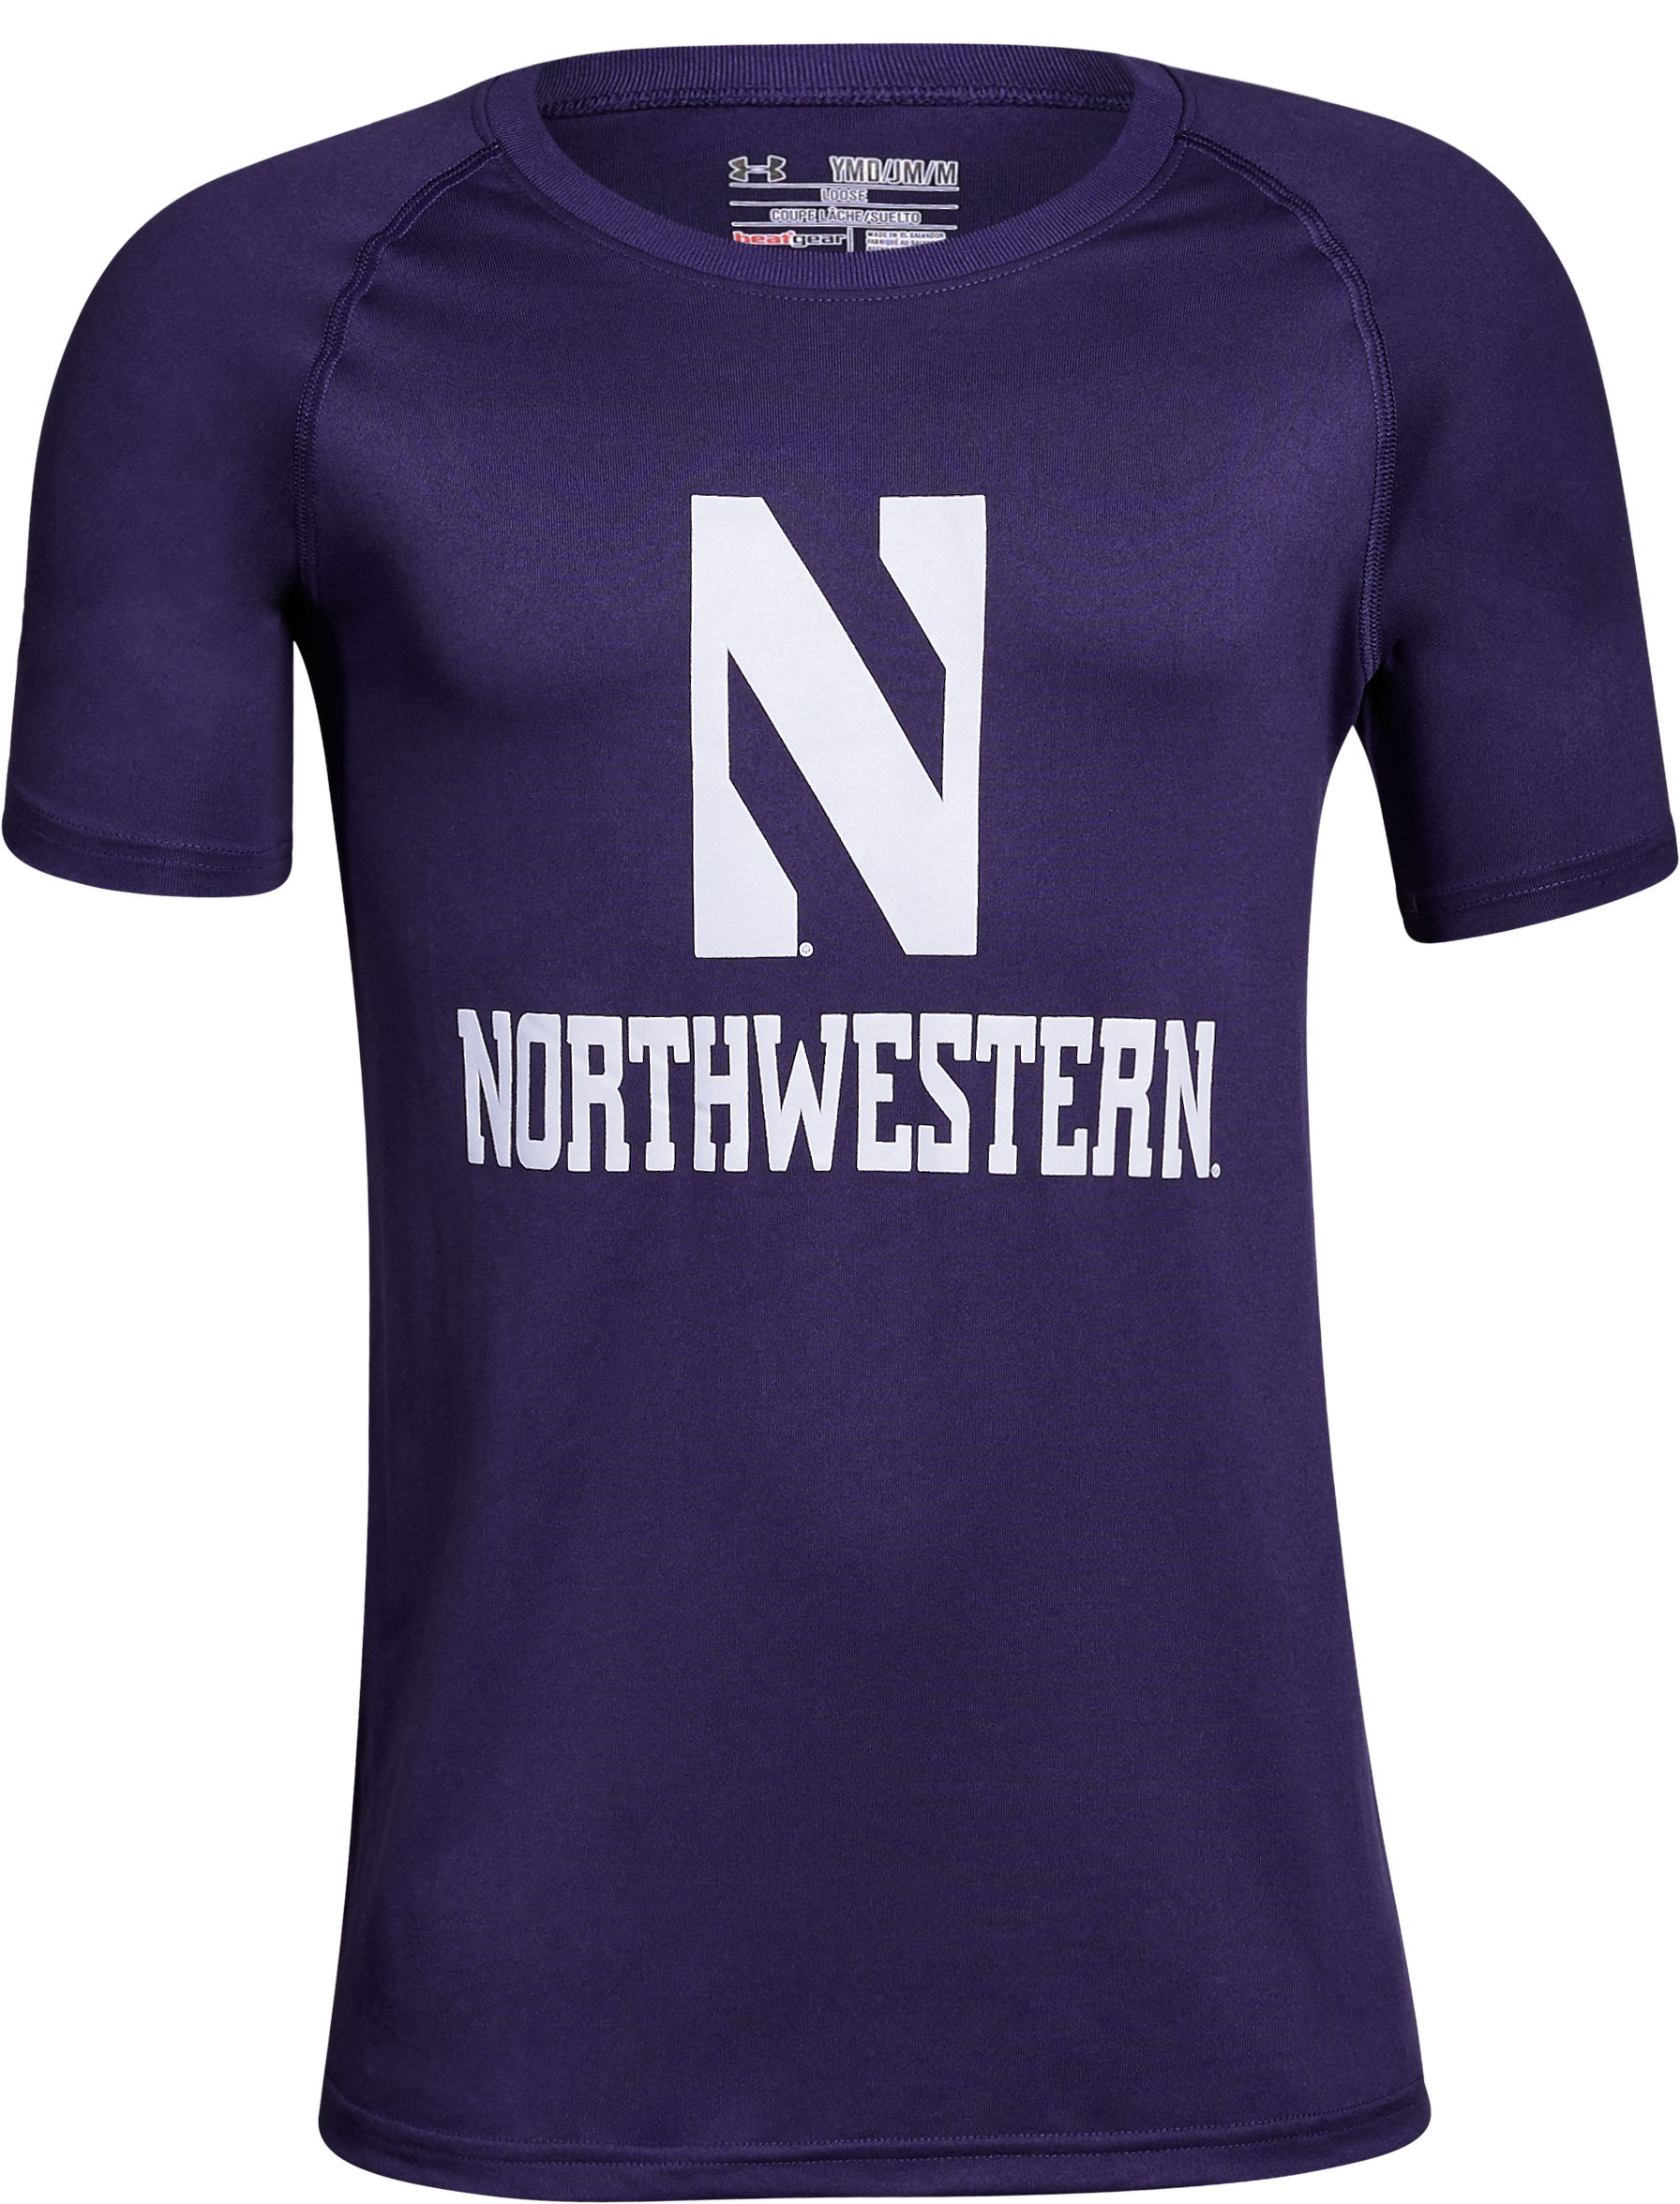 Boys' Northwestern Charged Cotton® T-Shirt, Purple